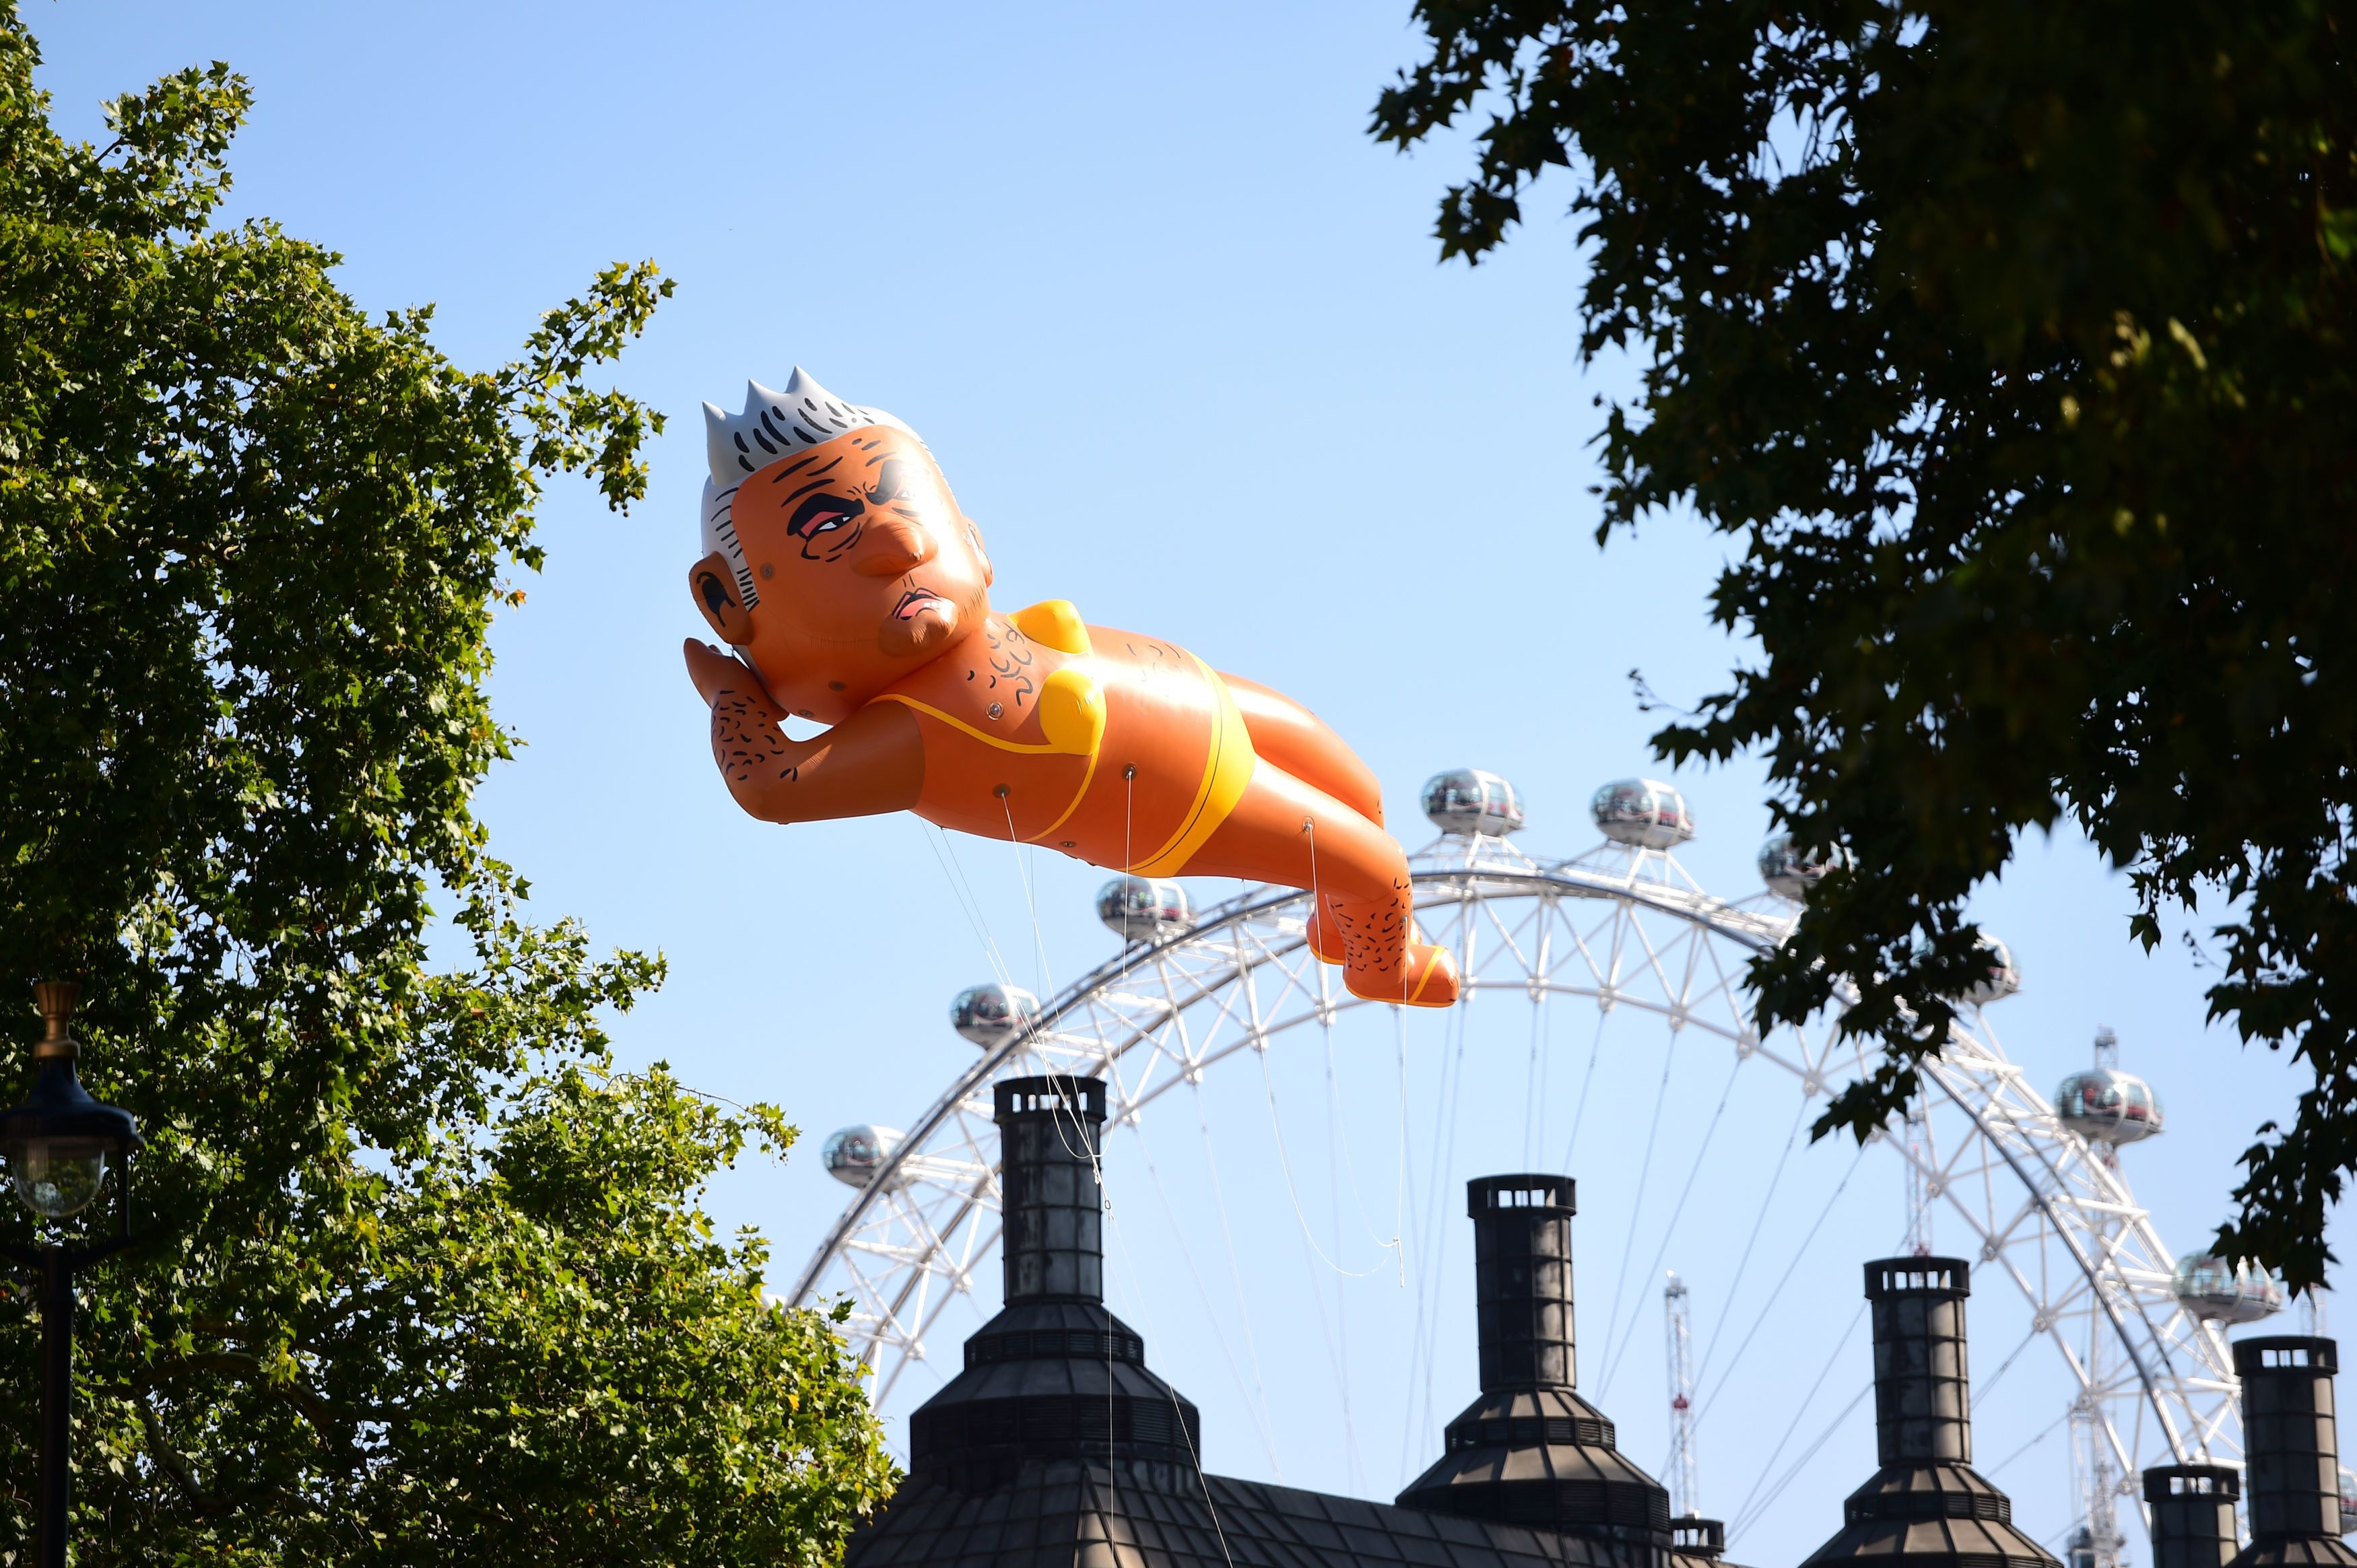 Sadiq Khan Blimp Takes To The Skies As Crowd Cheers For Mayor 'To Go'